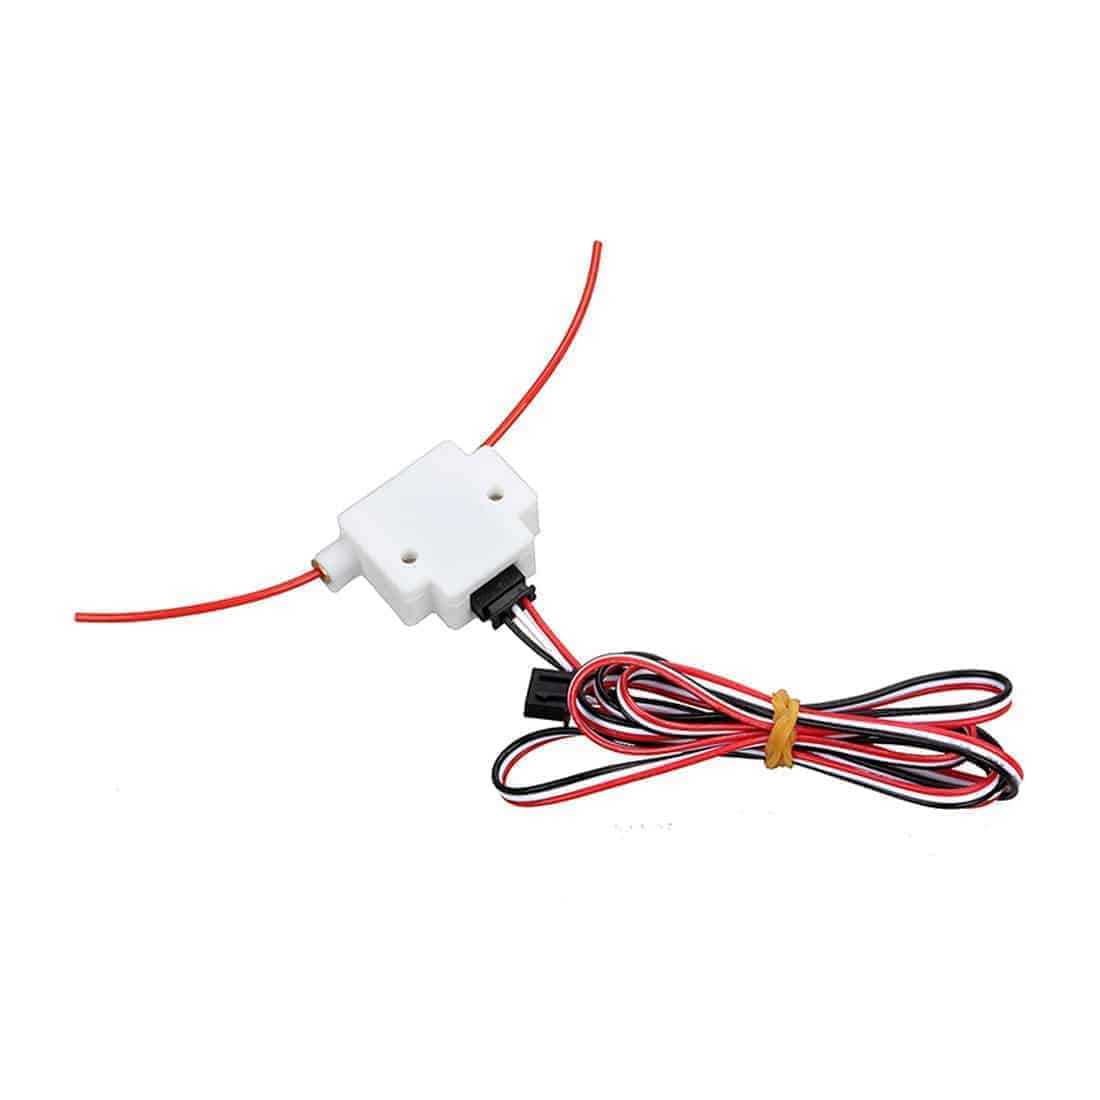 3d Printer Filament Break Detection Module Reprap Cr 10